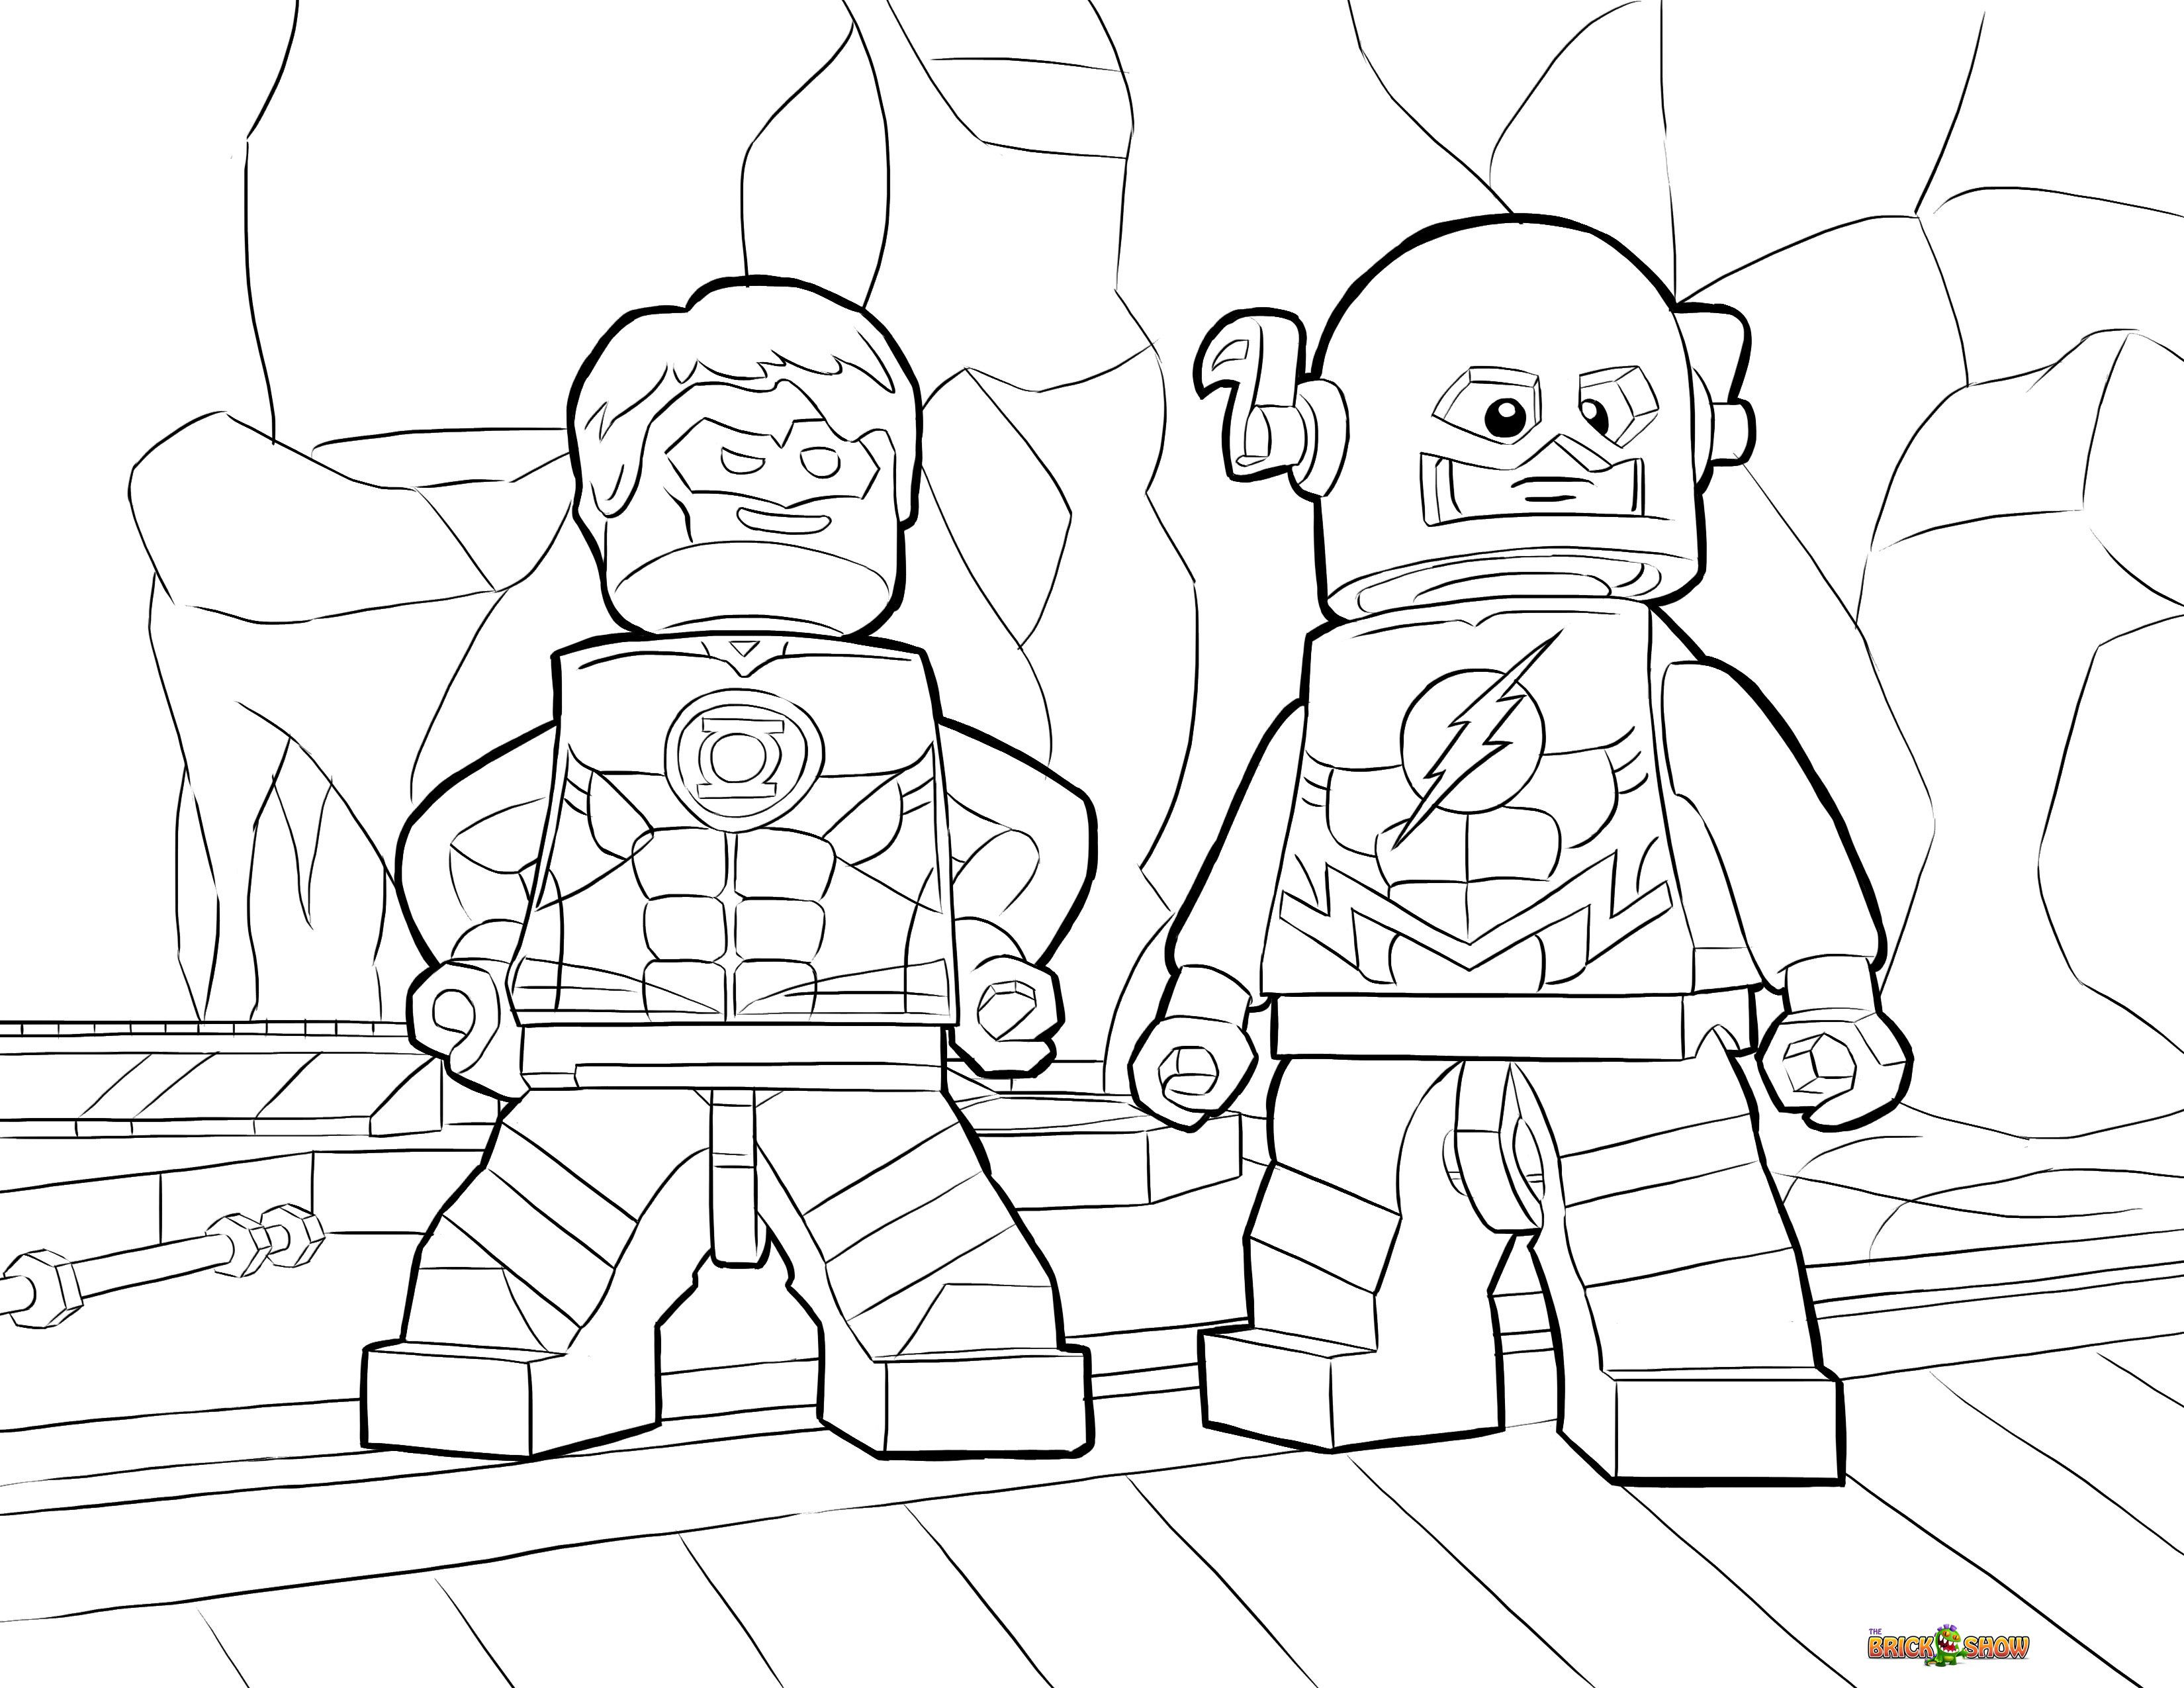 Lego Dc Universe Super Heroes Coloring Pages Free Printable Lego Dc Universe Super Heroes Color Sh Superhero Coloring Pages Lego Coloring Lego Coloring Pages